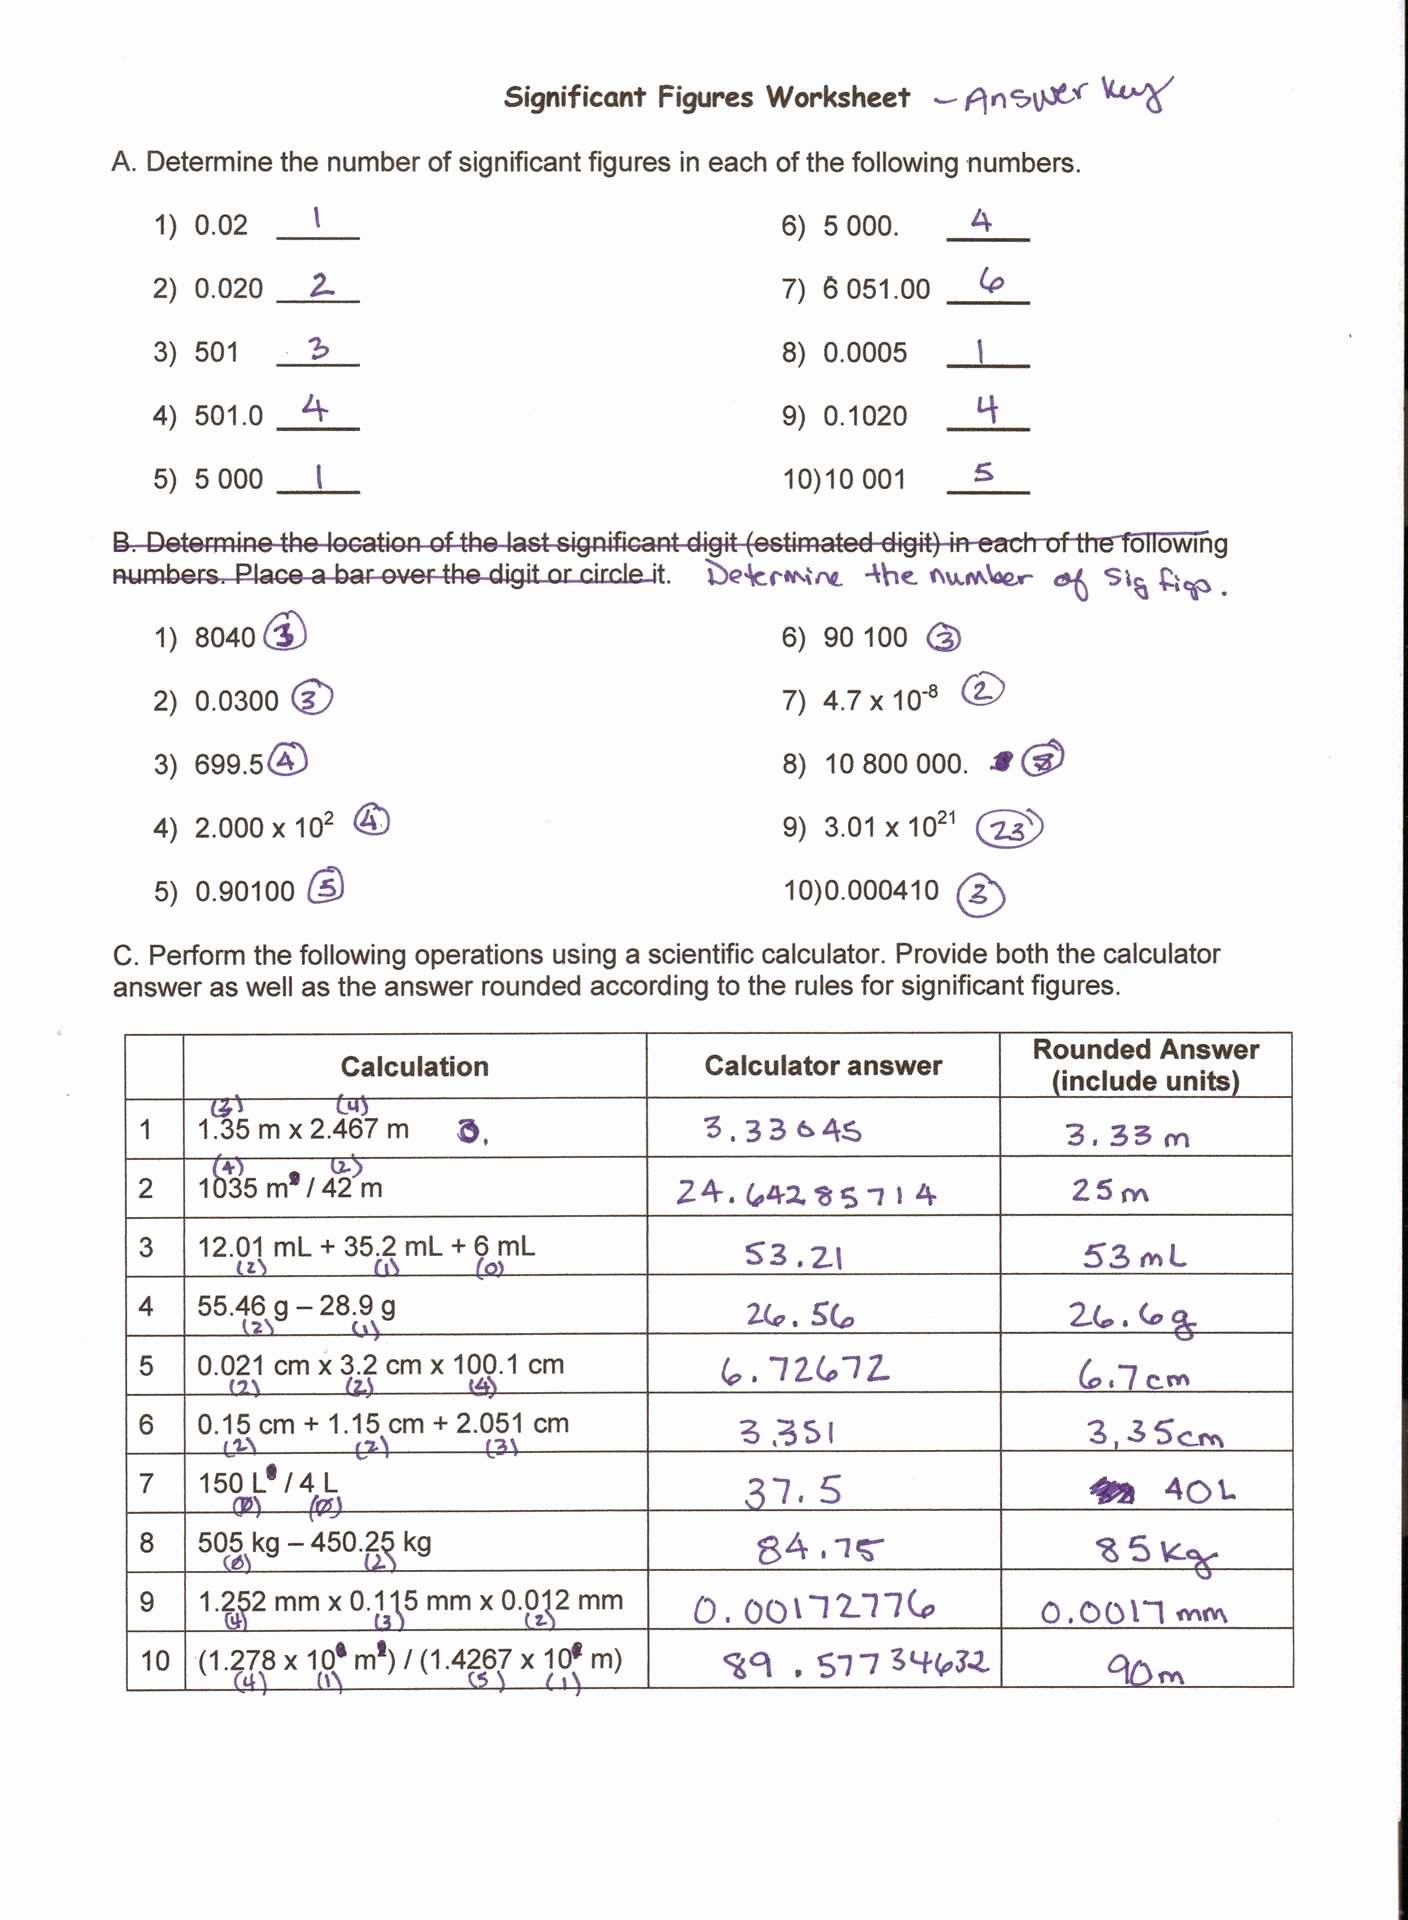 Counting atoms Worksheet Answer Key Inspirational New 550 Counting atoms Worksheet Answer